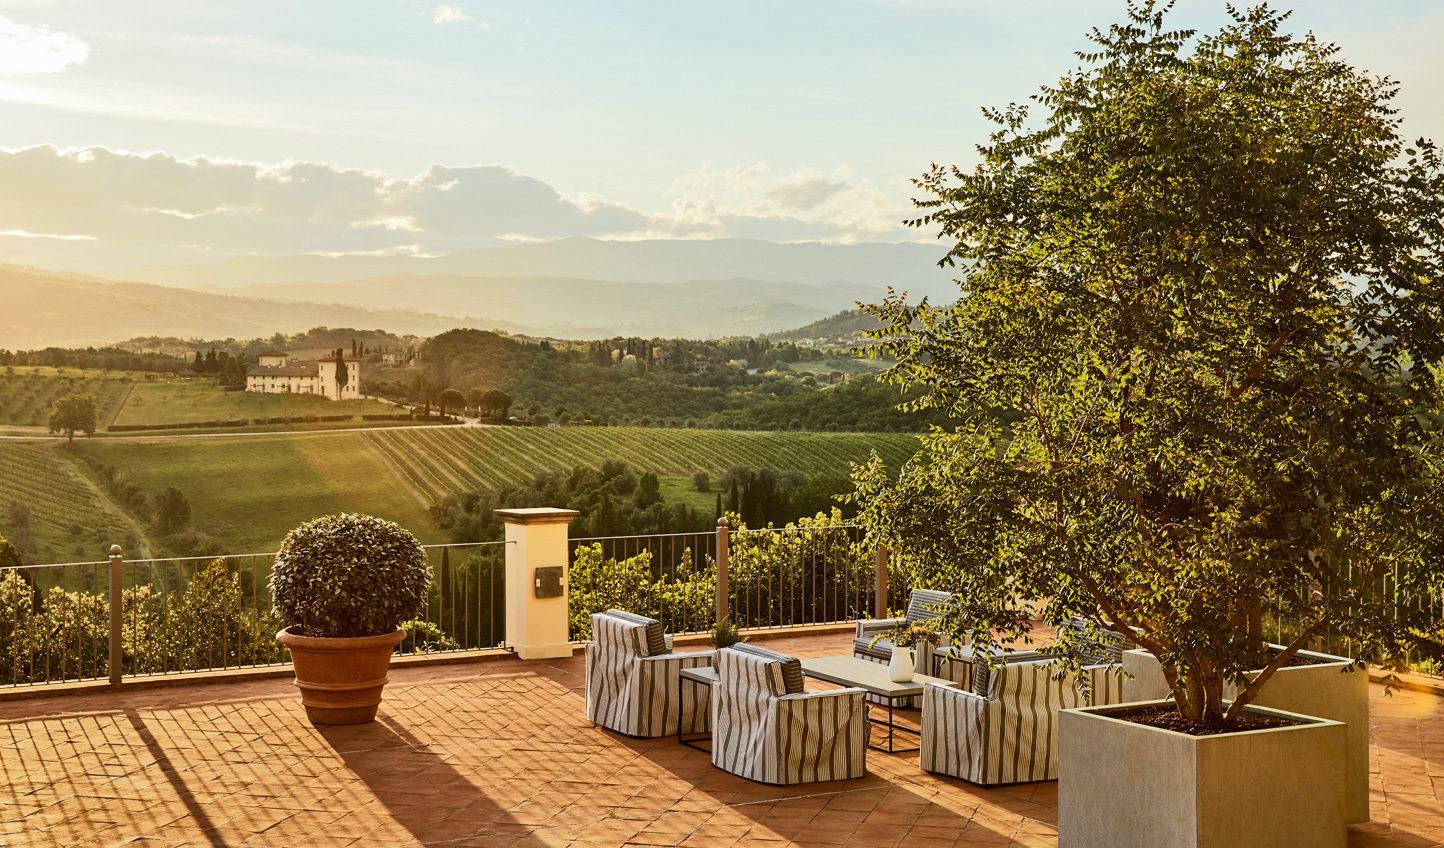 Soak in the Tuscan countryside from the comfort of the terrace